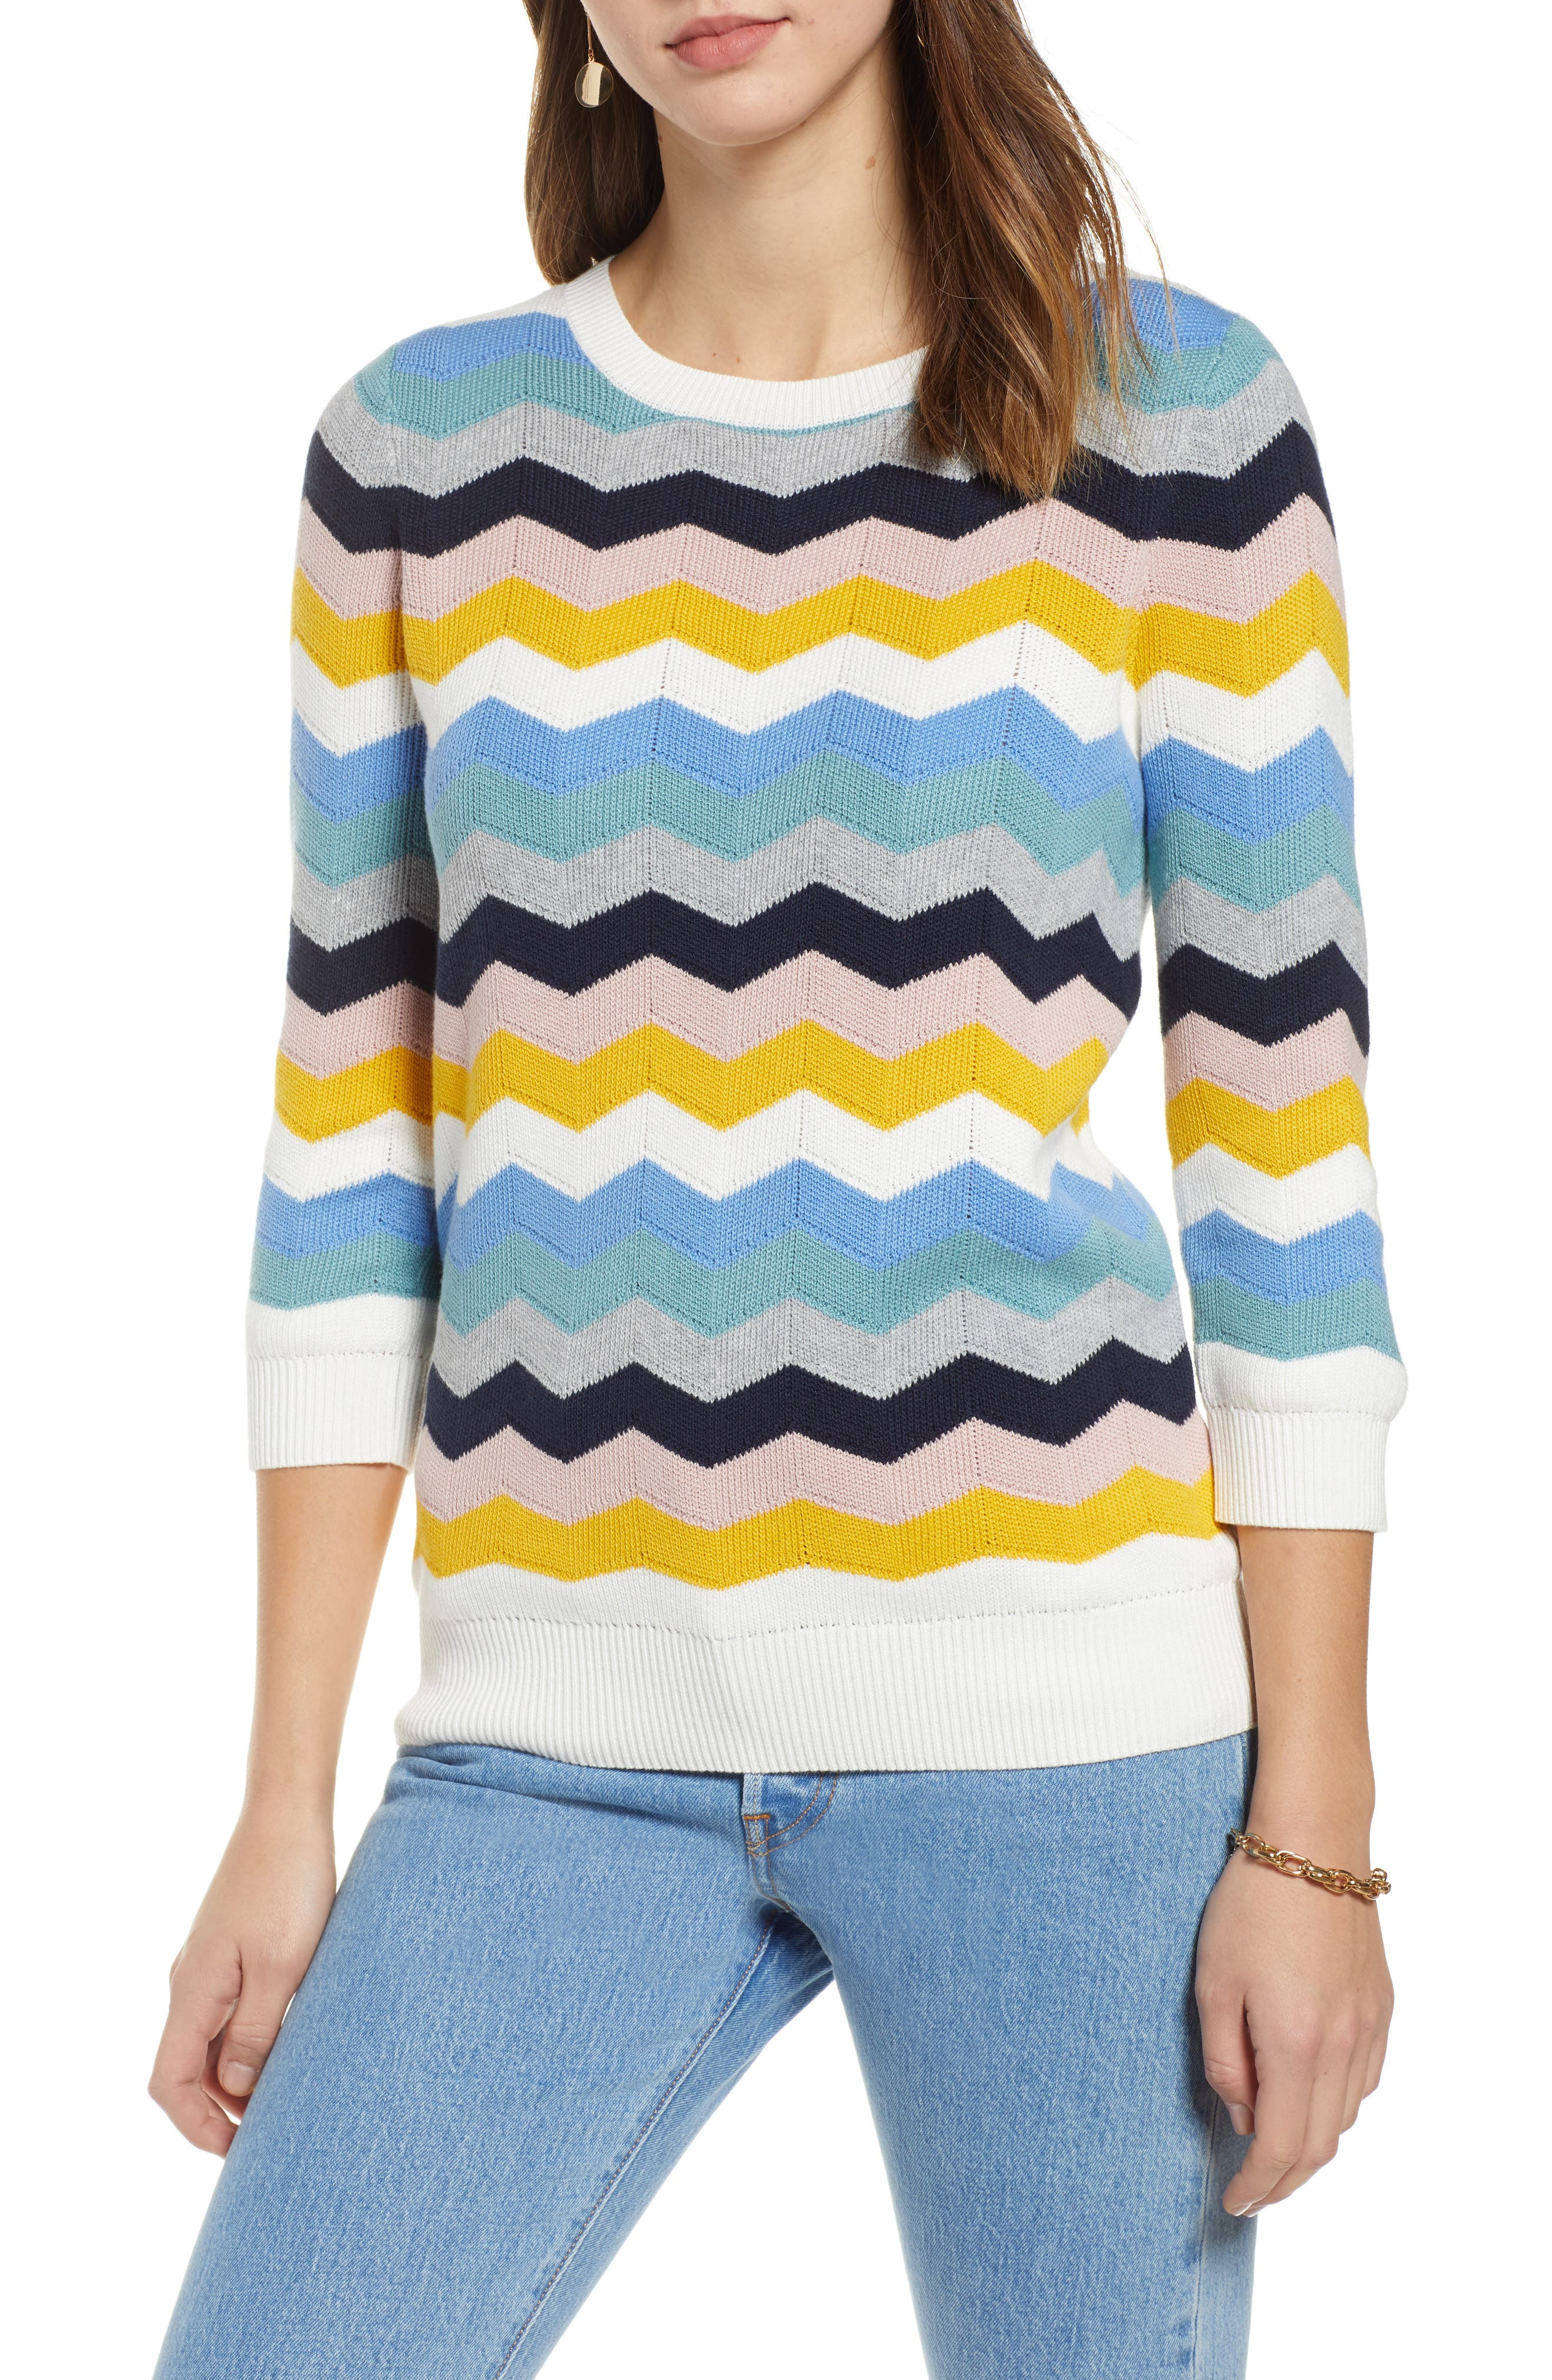 Chevron Jacquard Sweater by 1901